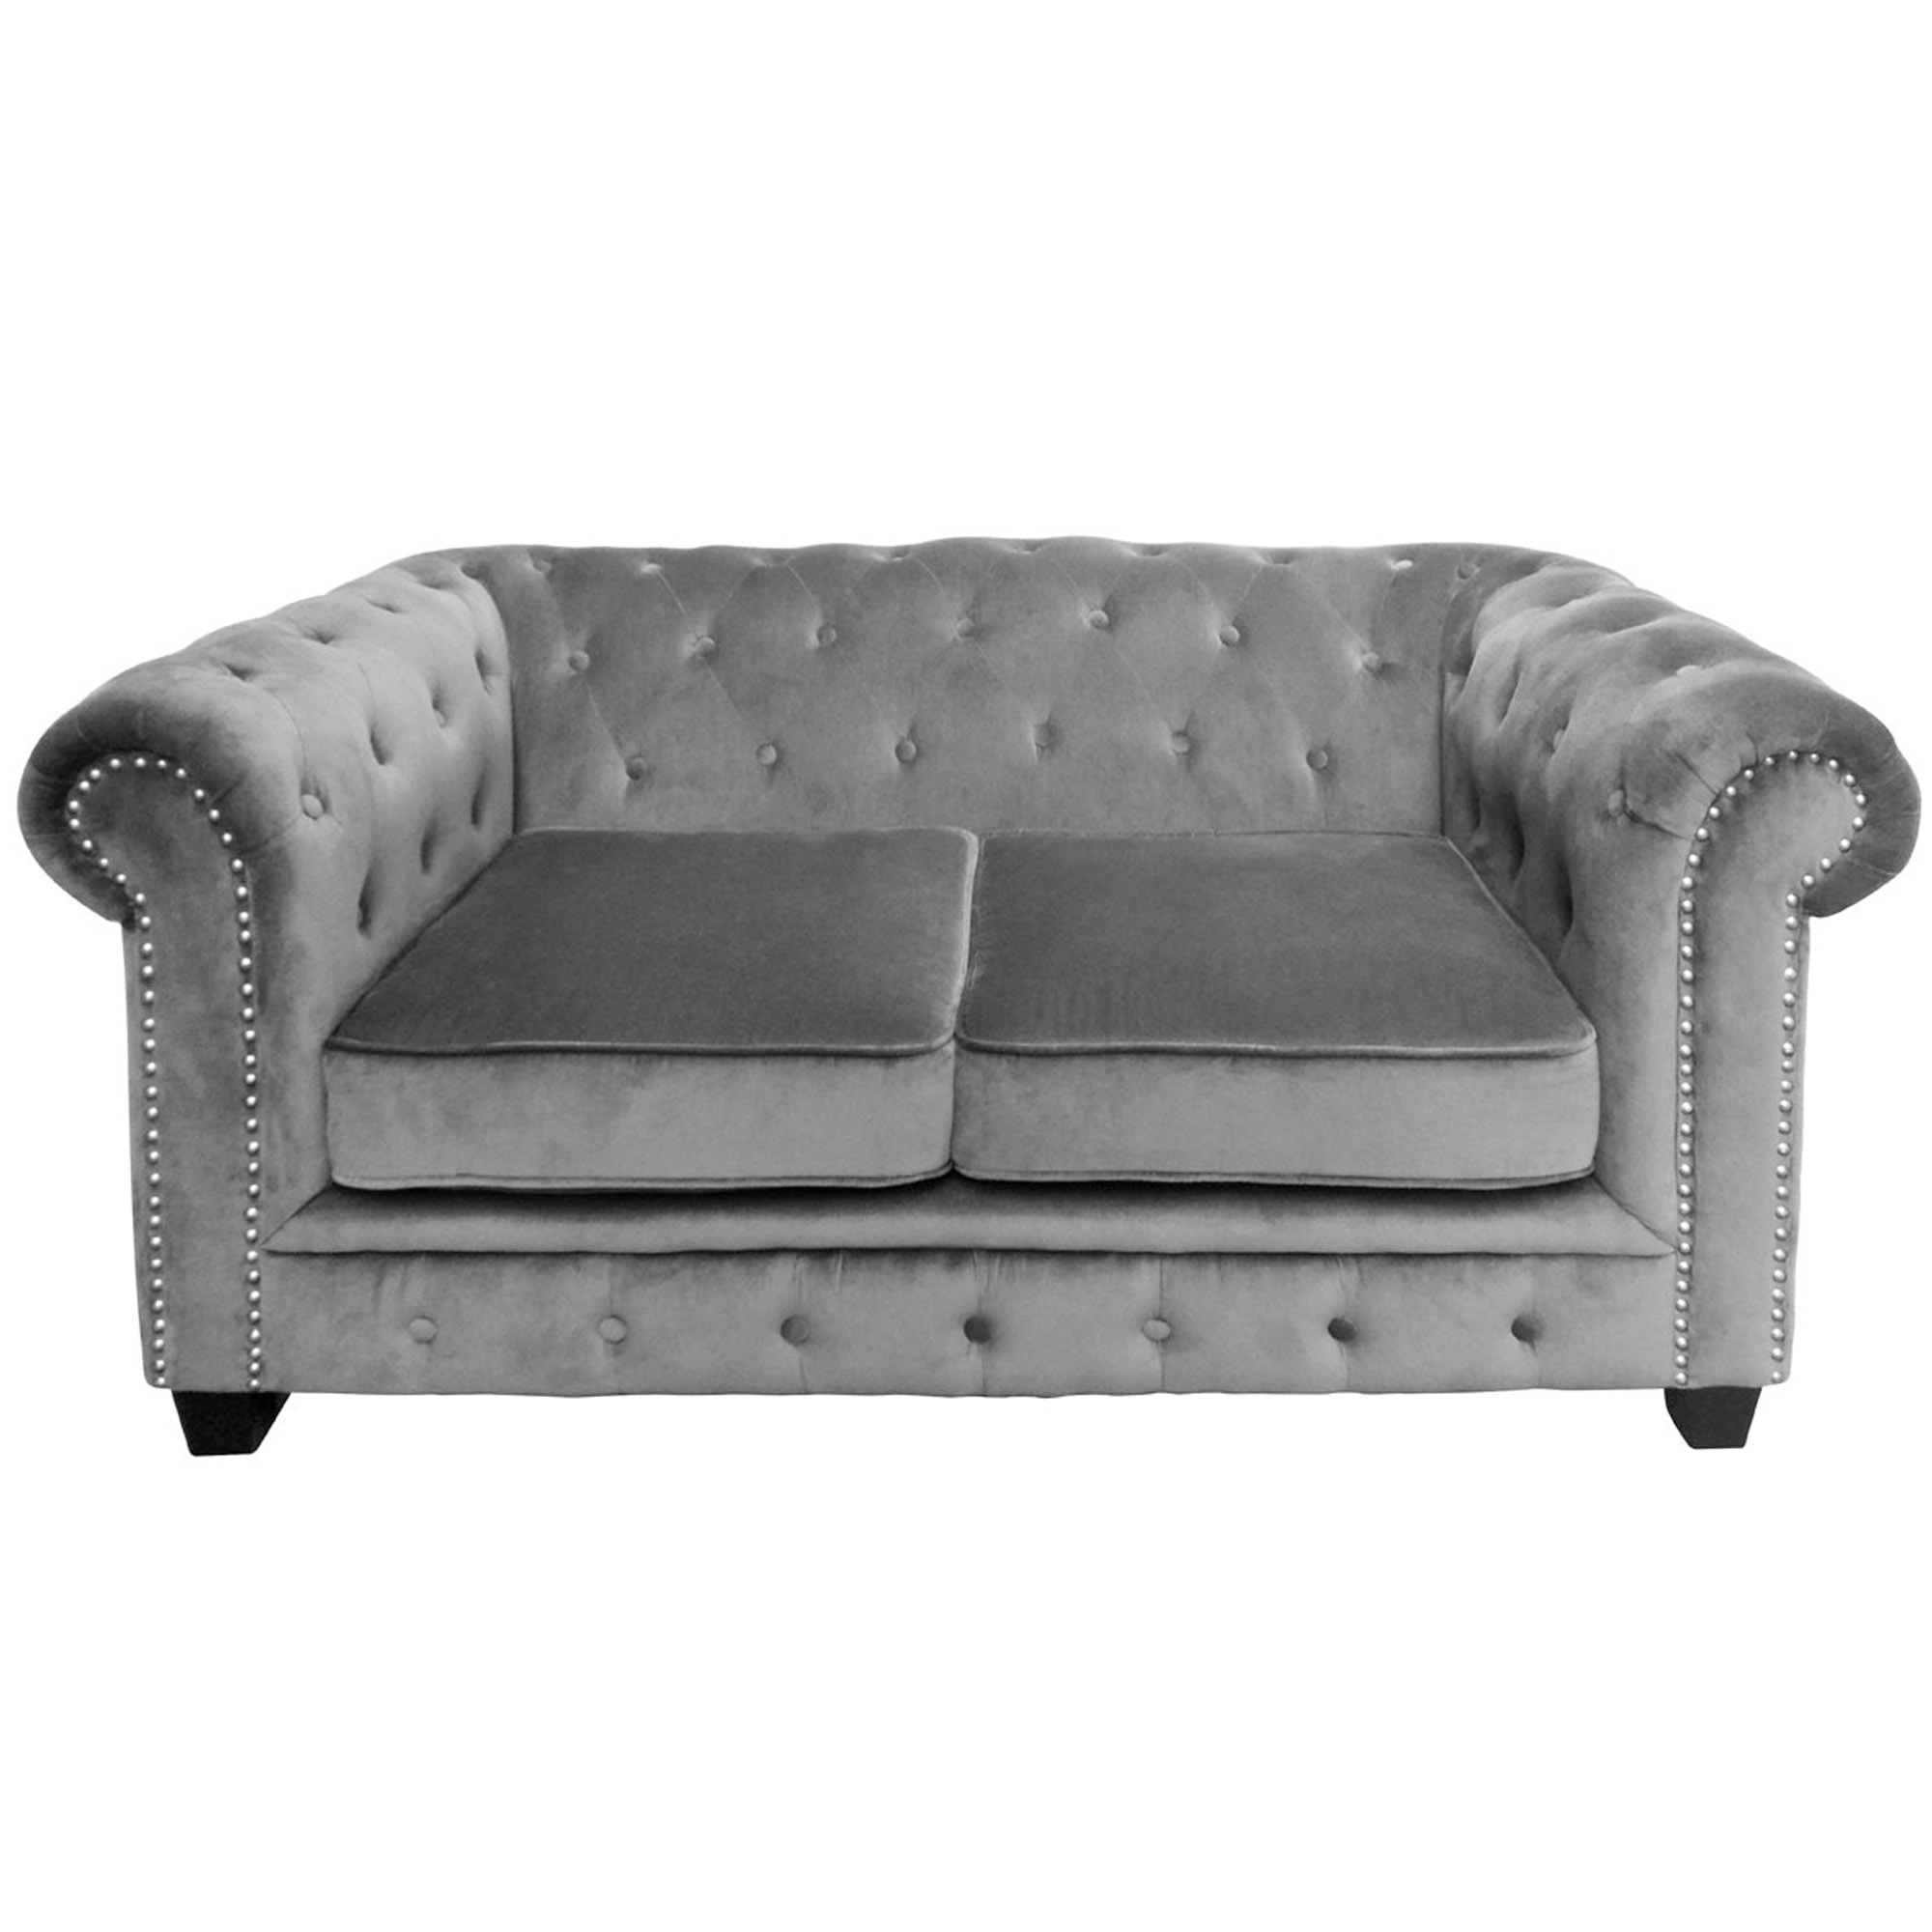 Grey Regents Park Sofa 2 Seater